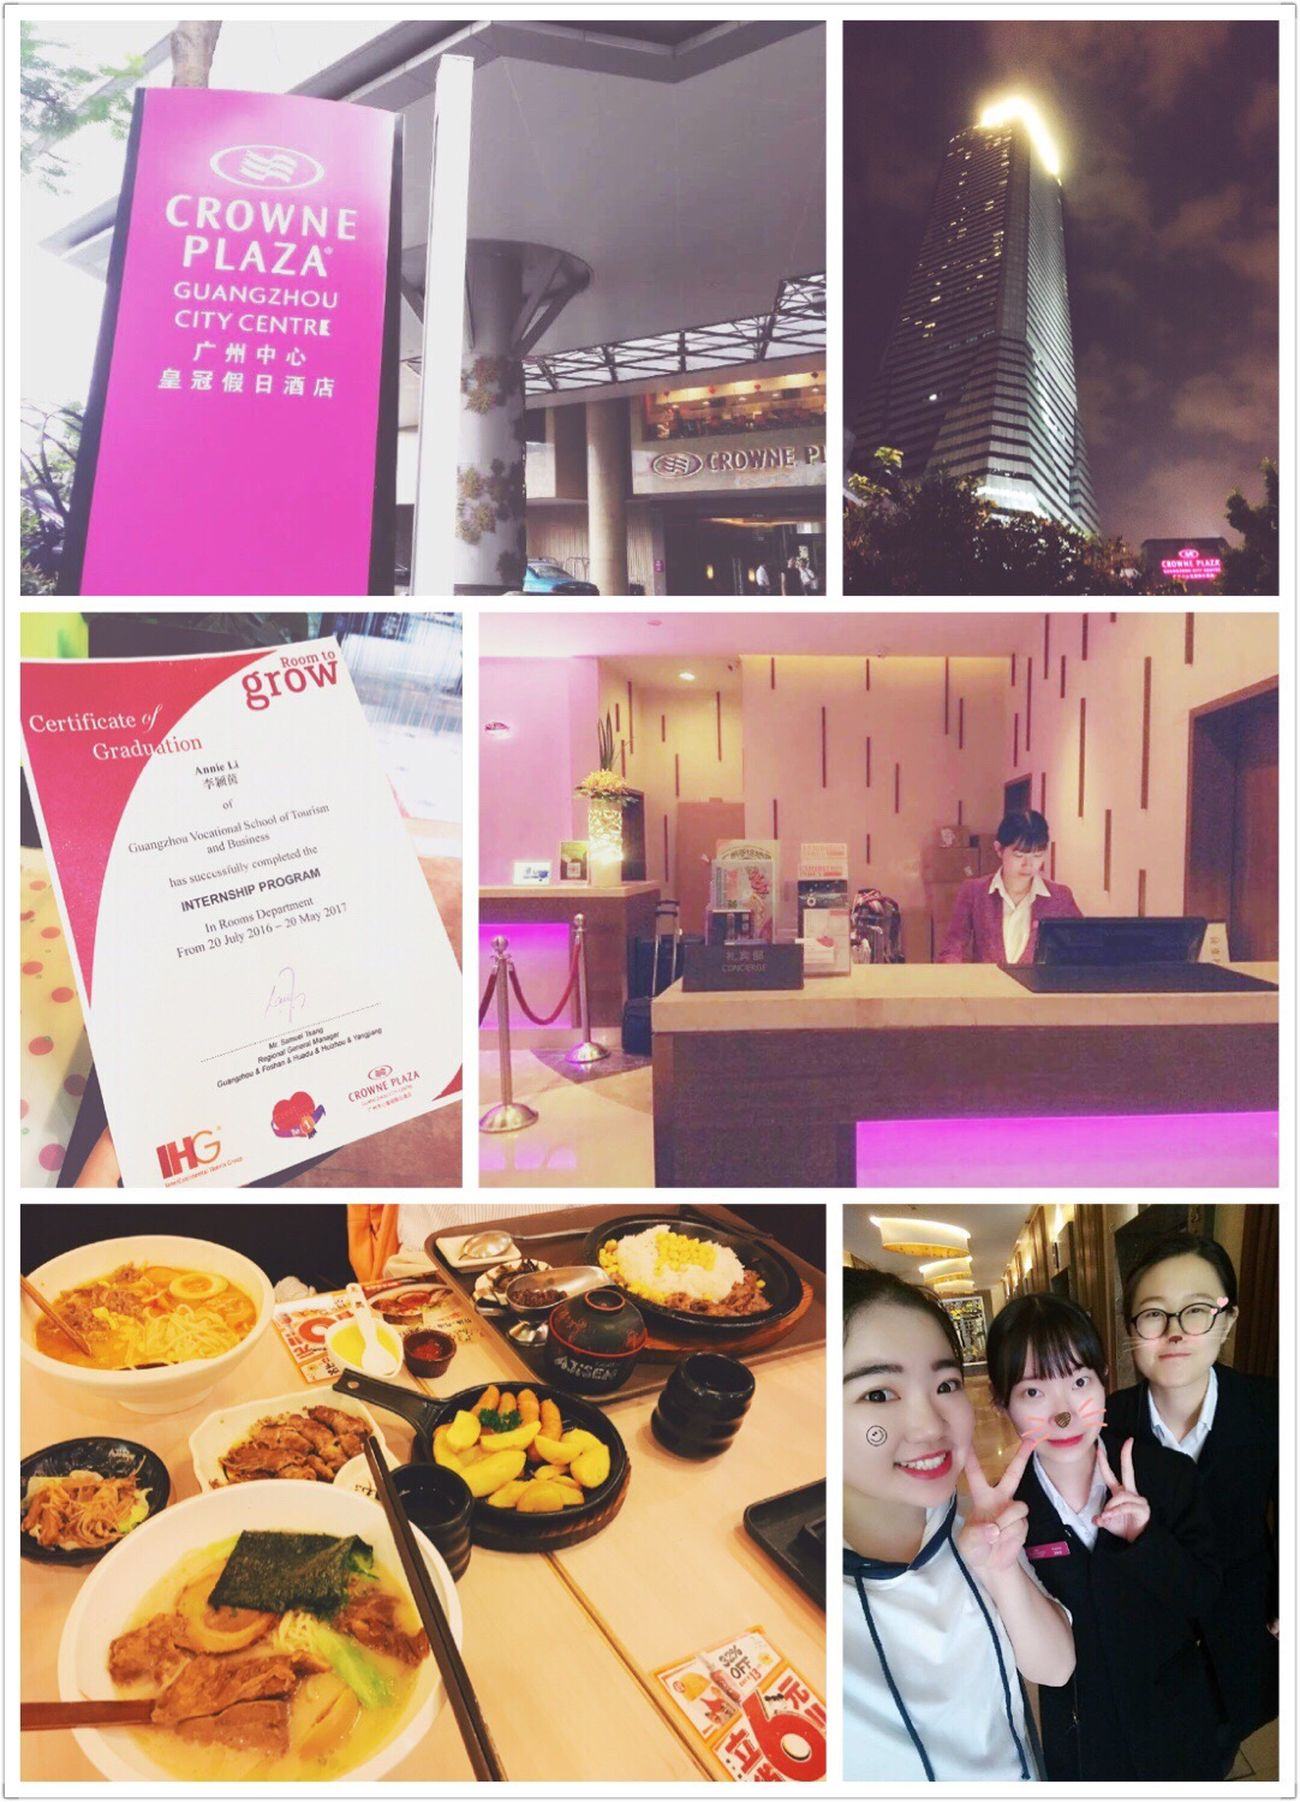 I finished my ten-month internship yesterday.谢谢陪我吃饭纪念的小伙伴🍻CPCC的buddy们 两年后见!! Last Day Internship Dinner Crowne Plaza Hotel Goodbye Congratulations Thankful Concierge  Girls EyeEm Best Shots Sharing A Moment Taking Photos Life Style Records Enjoying Life (null)Friendship ❤ Smiling